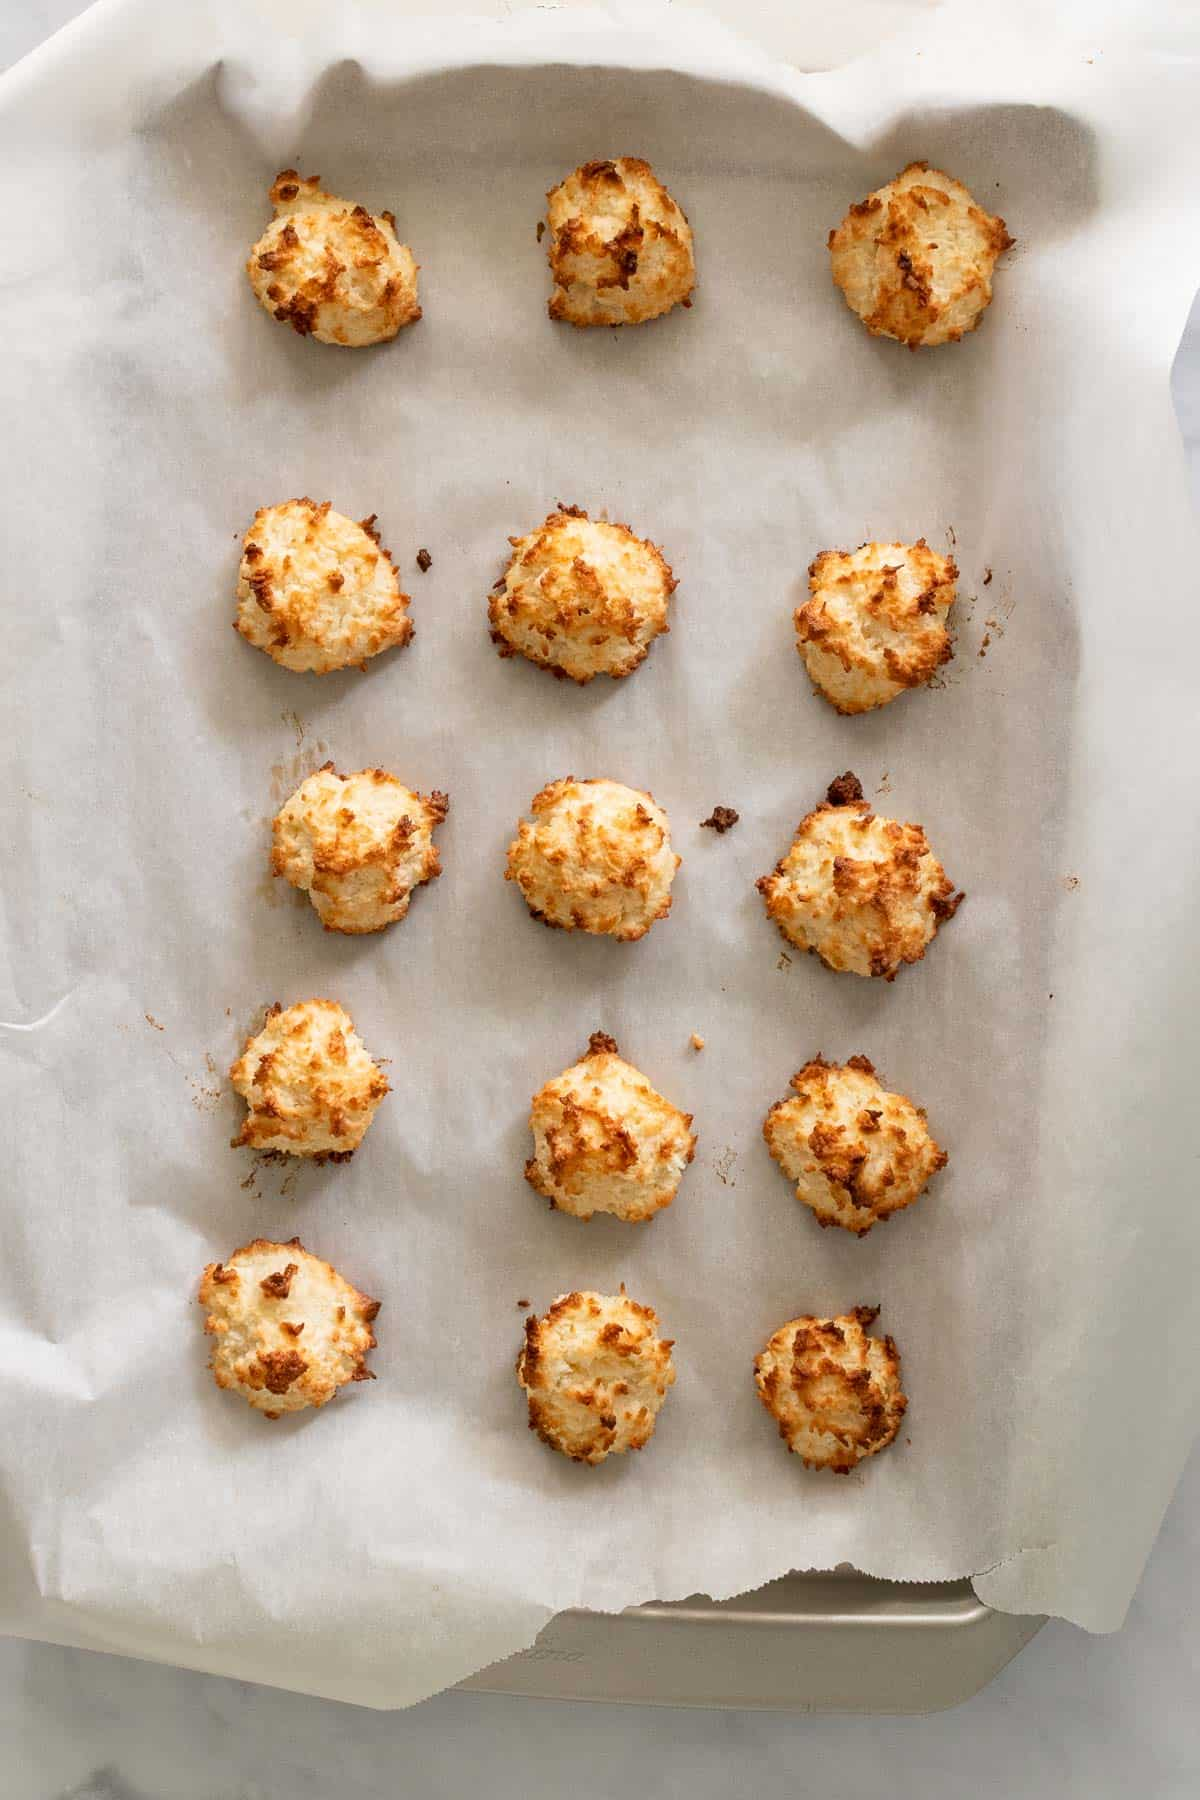 Finished macaroons cooling on a baking sheet lined with parchment paper, as seen from above